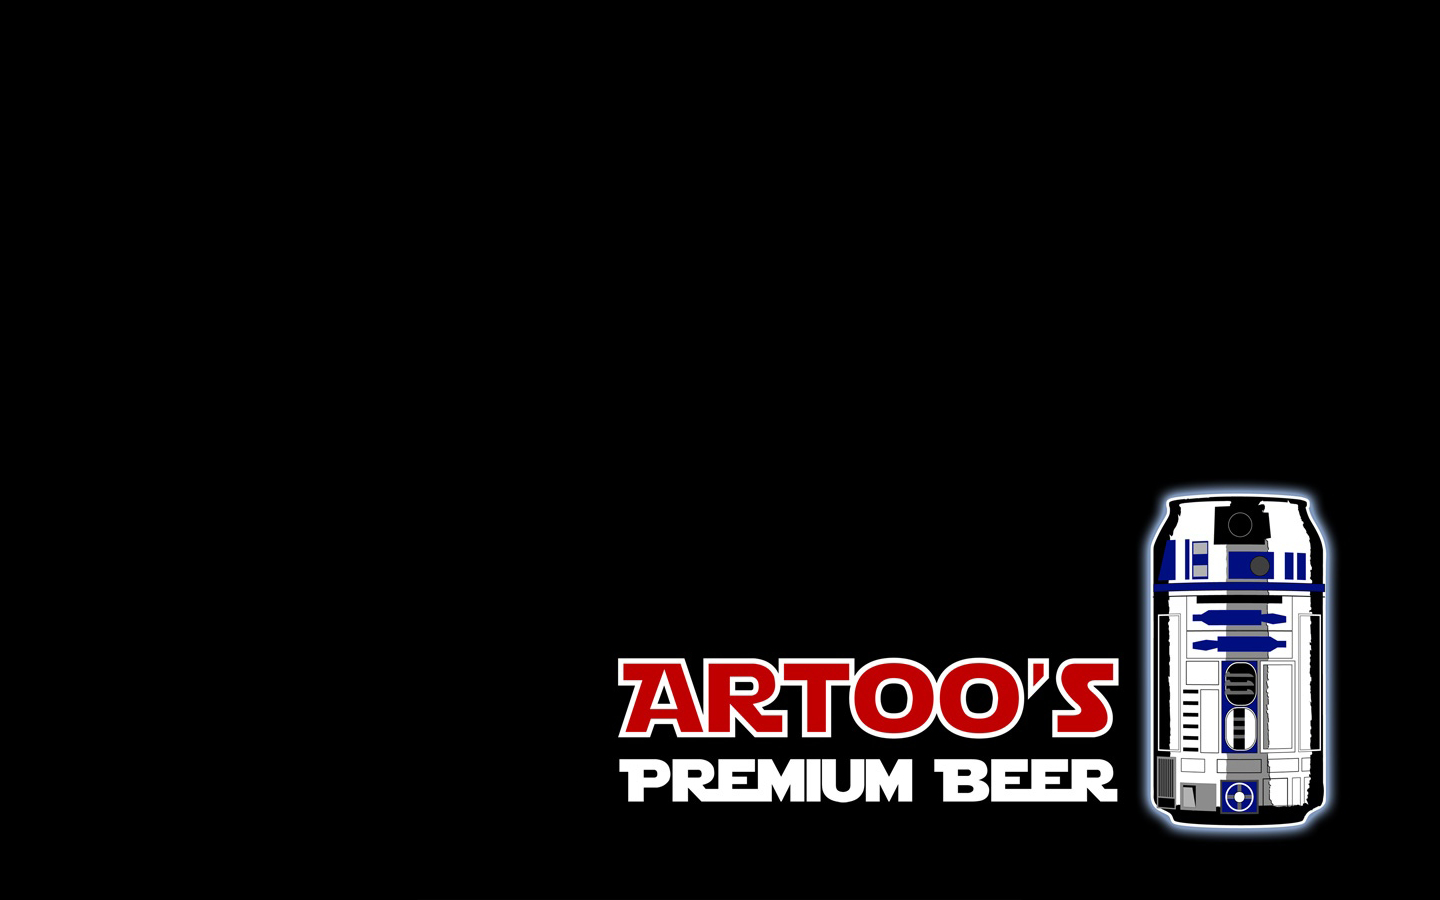 artoo premium beer and HD Wallpaper